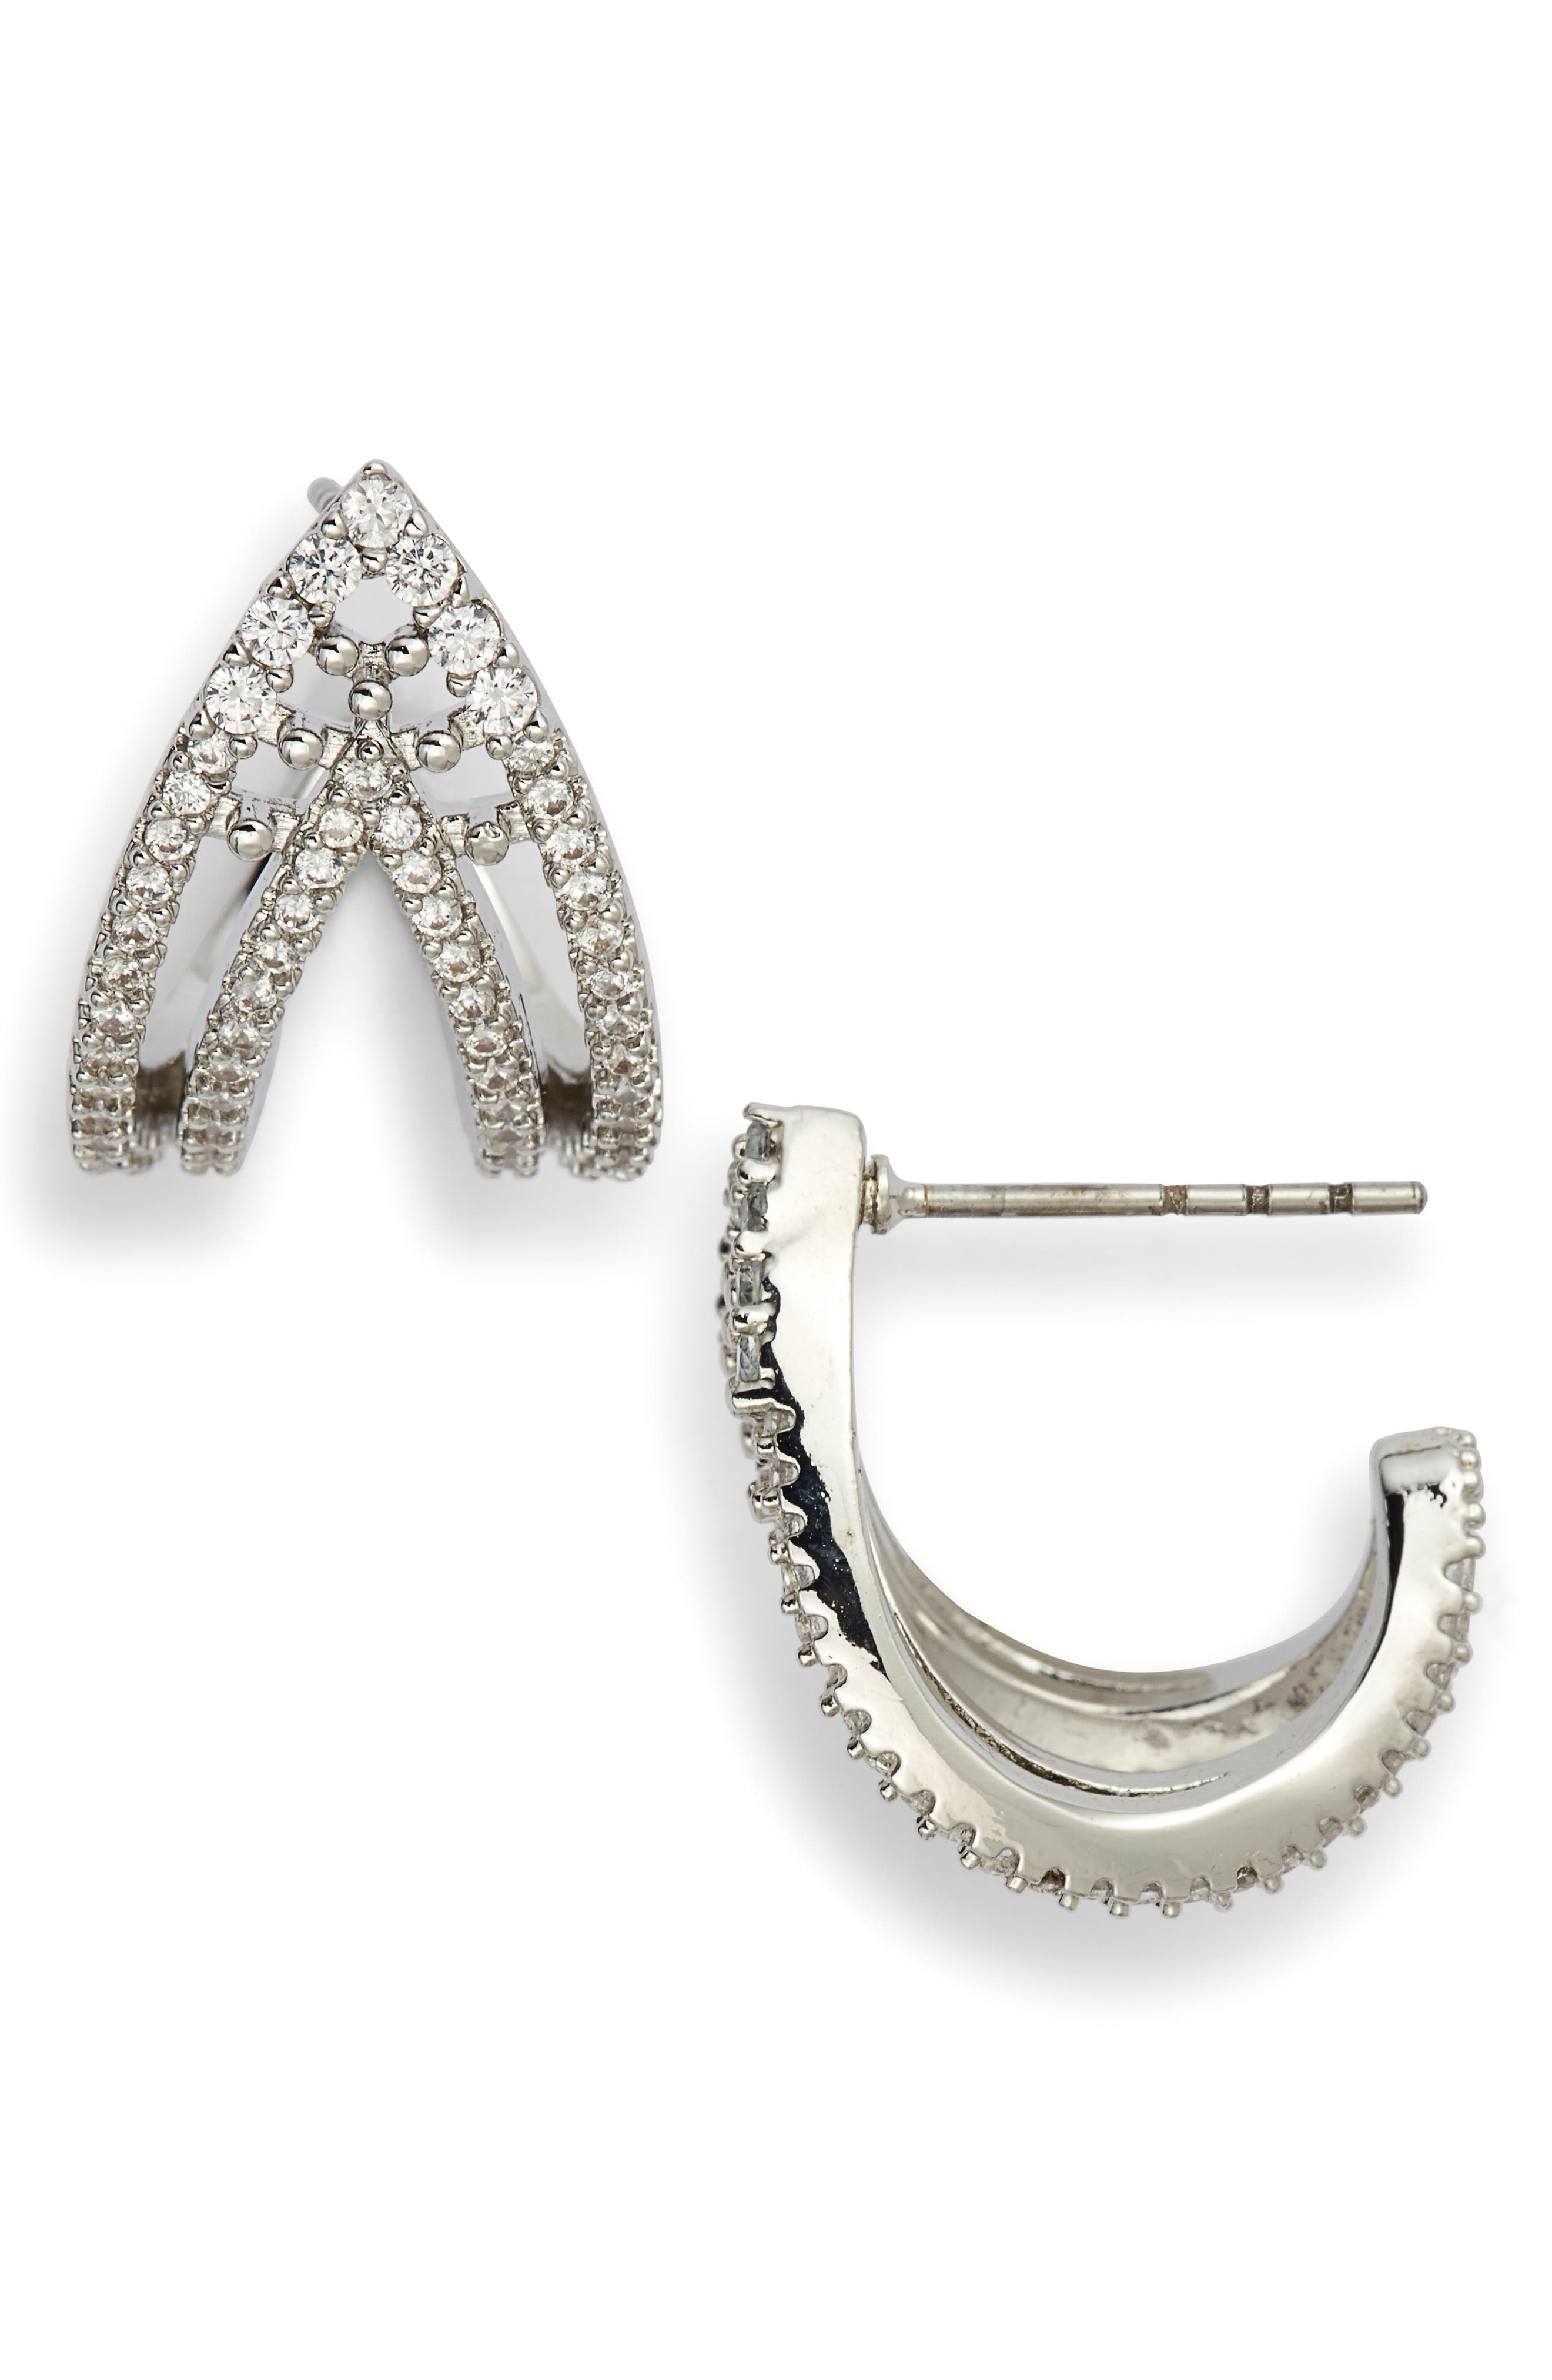 JENNY PACKHAM Pave Curved Open Stud Earrings in Silver